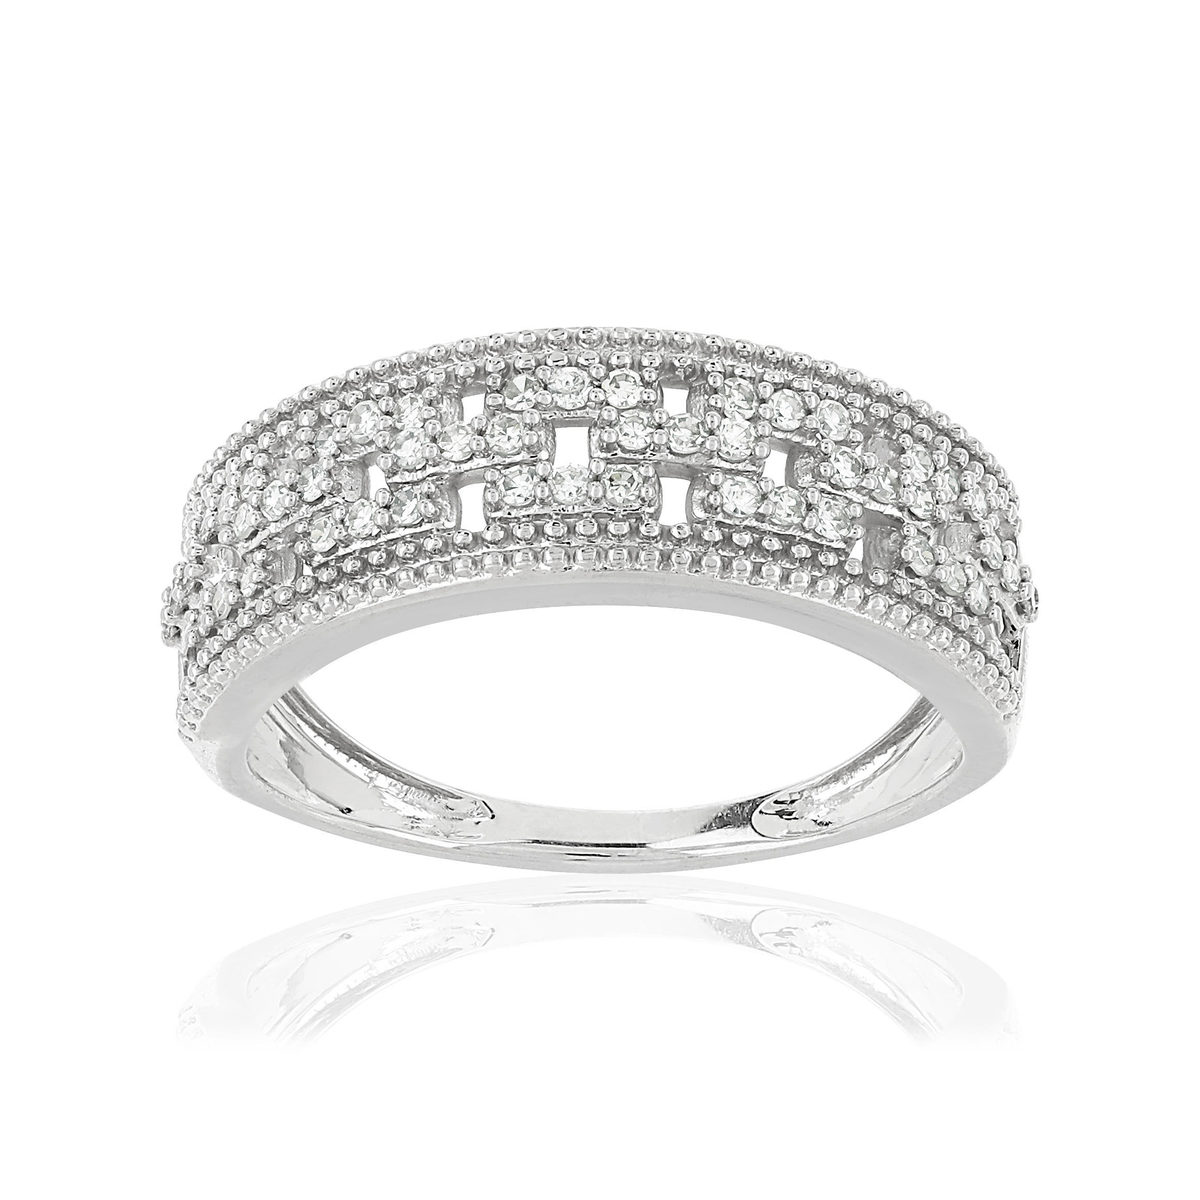 Bague MATY Or 750 blanc Diamants blancs - vue 1